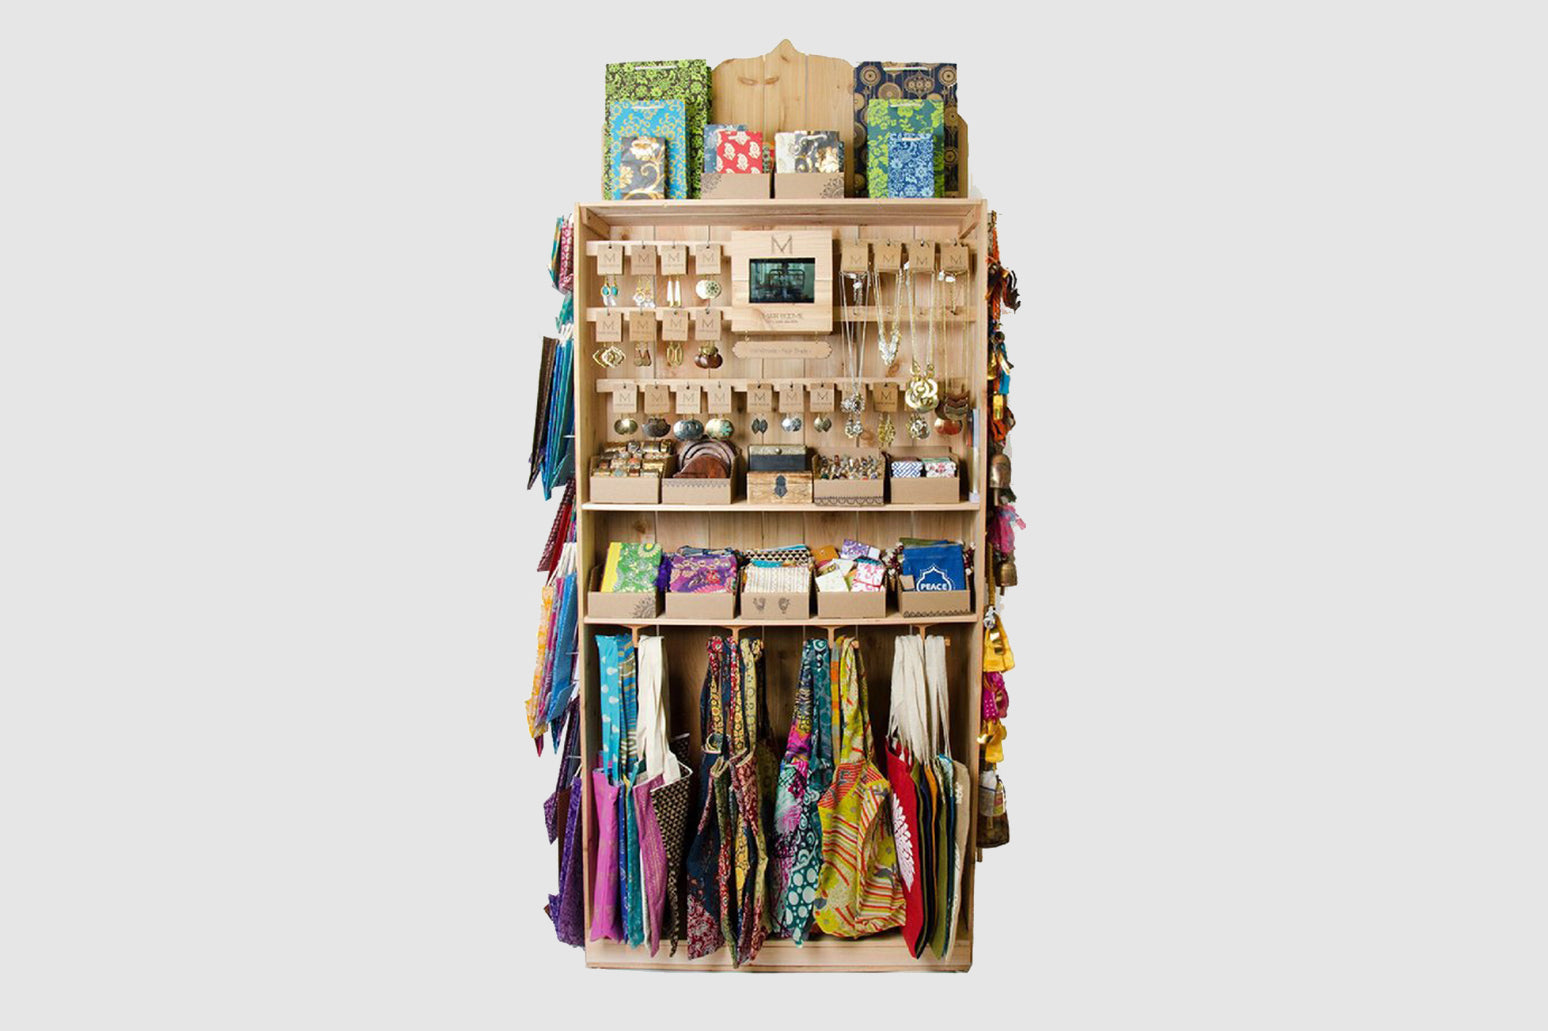 Product Display Shelving - Matre Boomie